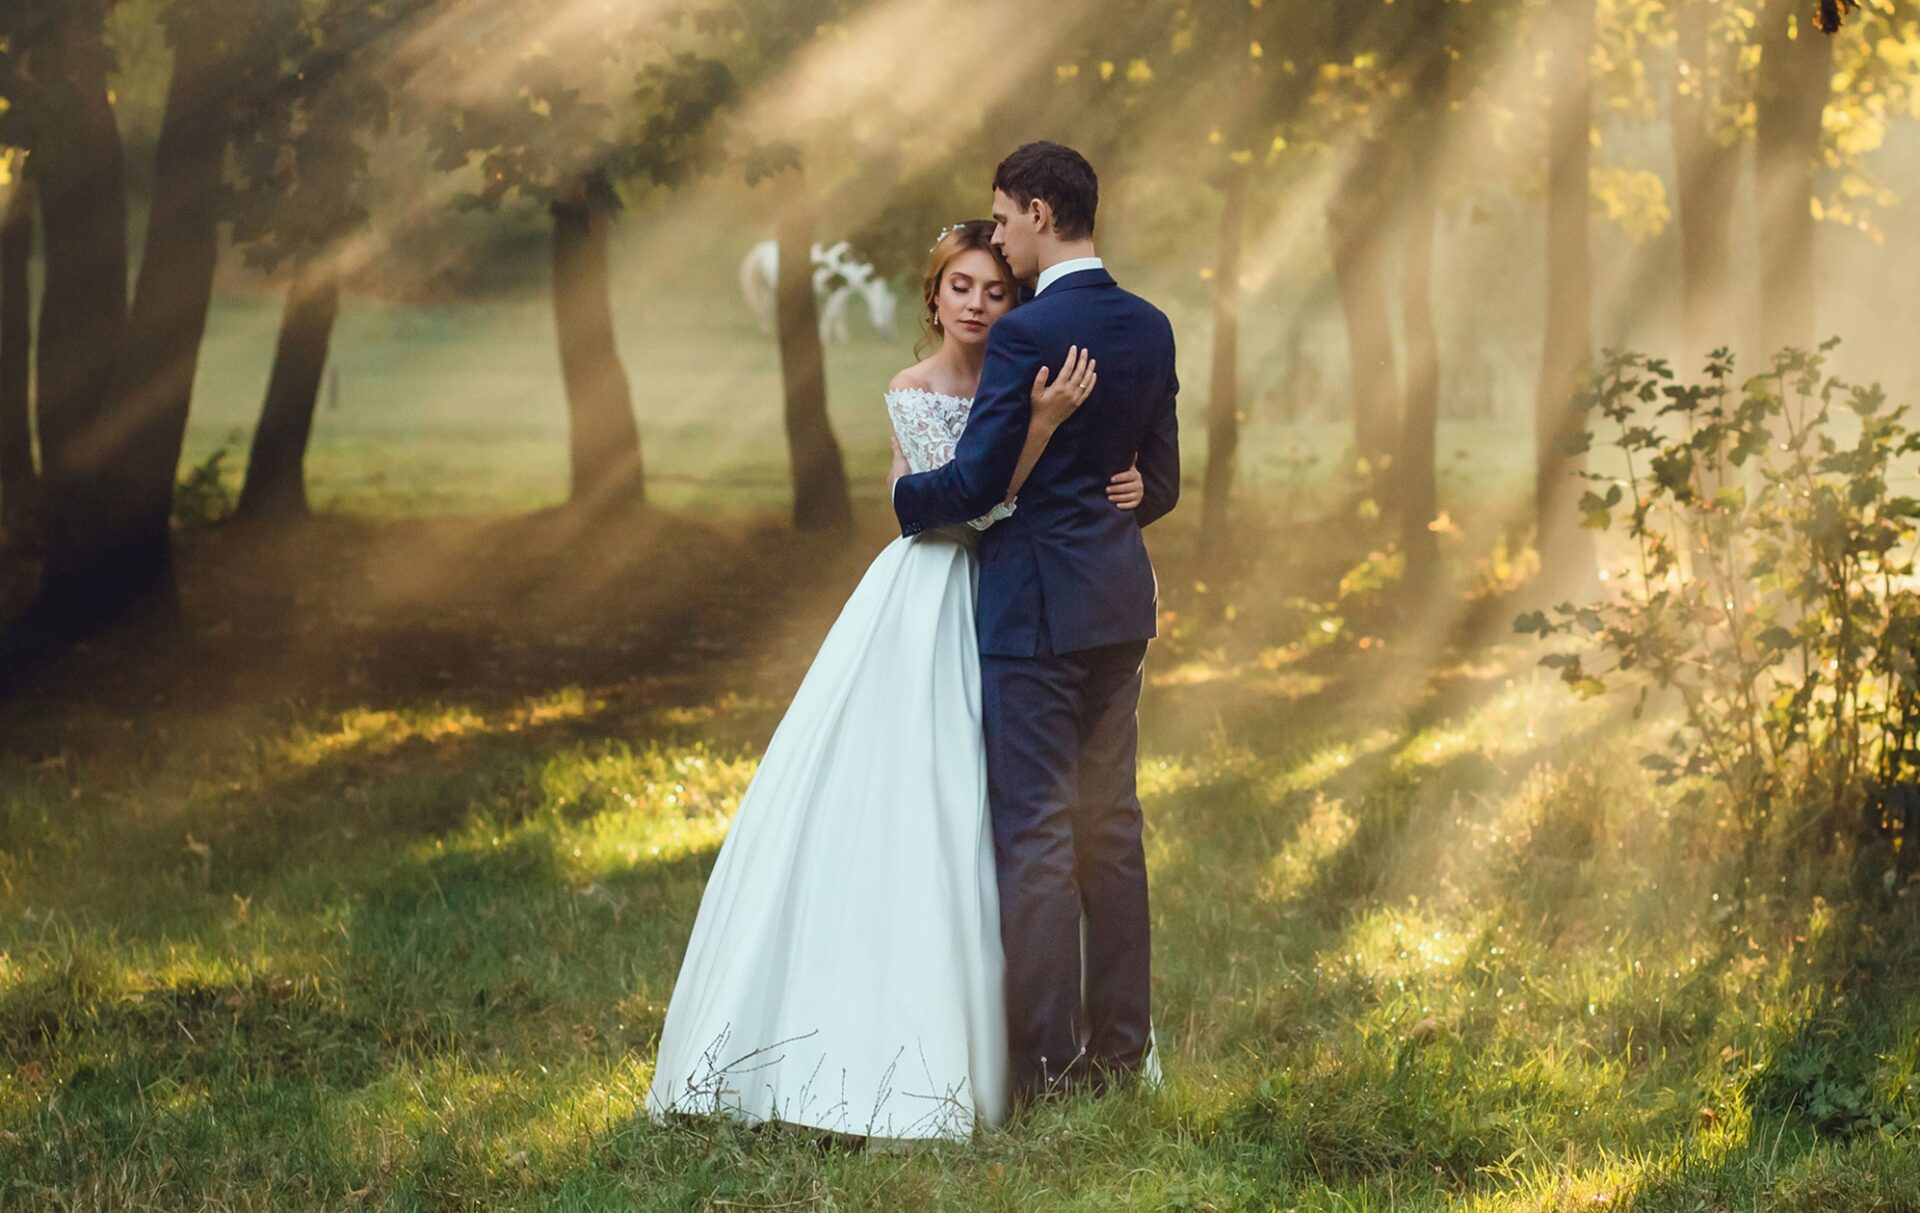 calm photo of a young bride in a beautiful long white a wedding magnificent dress and the groom to a strict fashionable stylish blue suit